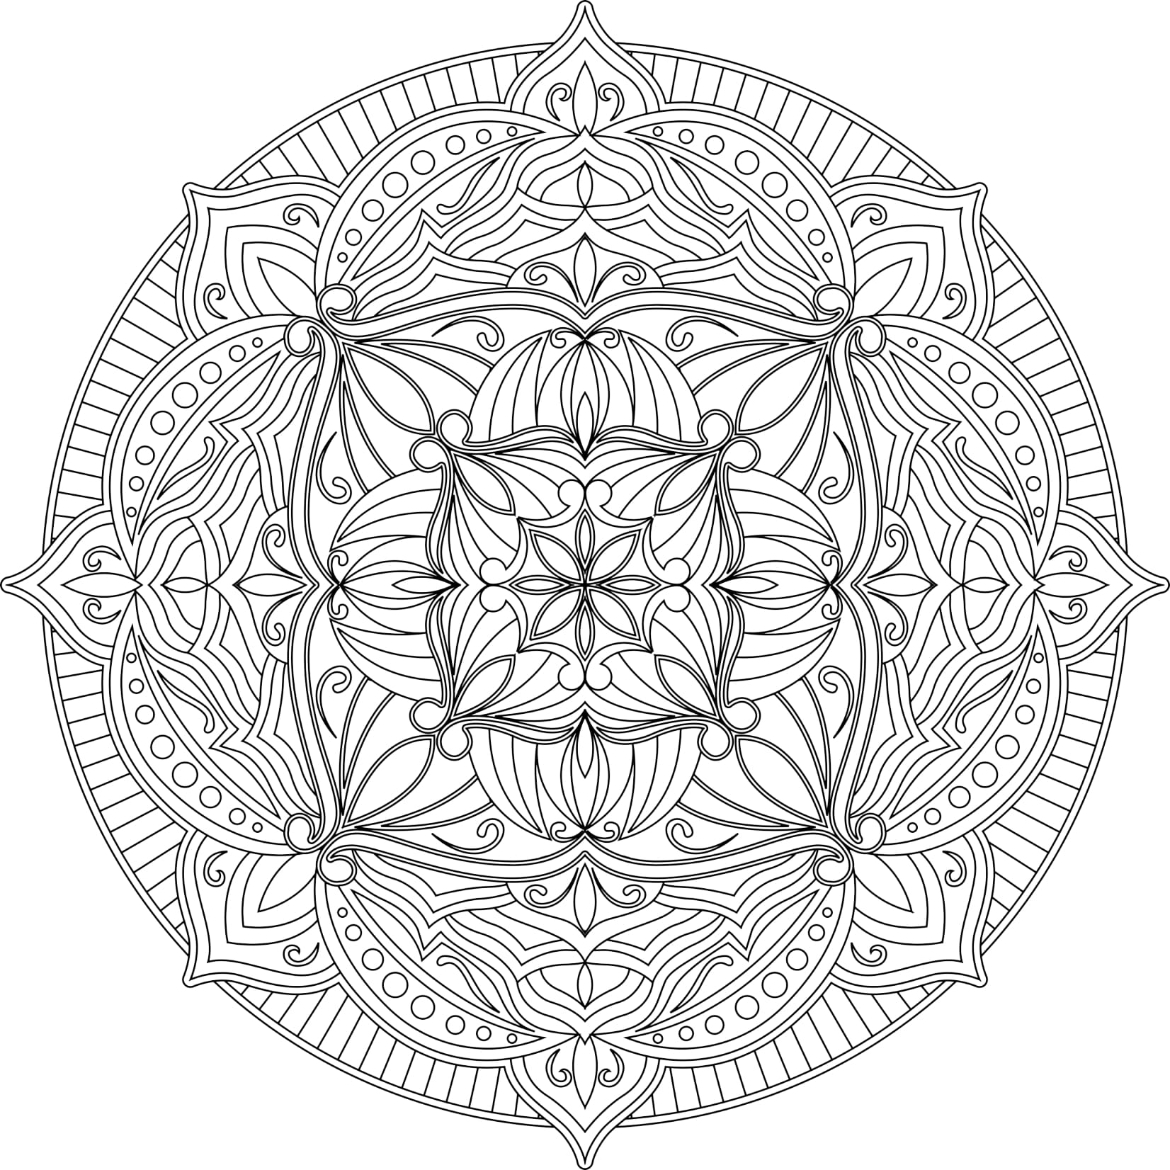 Mandalas To Color Volume 1 - Image 3